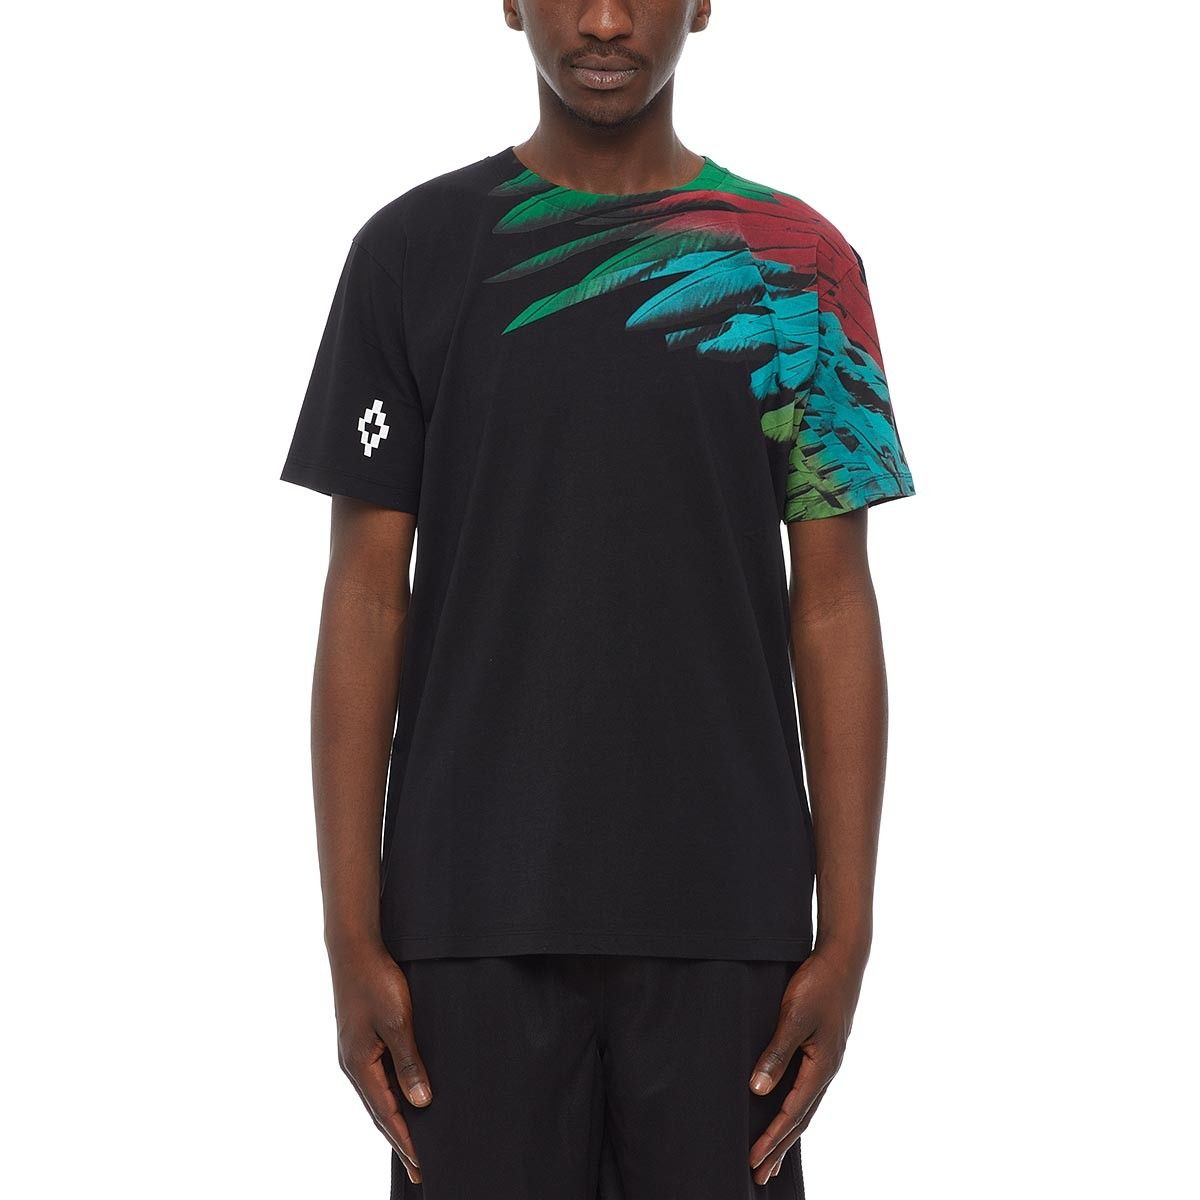 e179abb2 Jer t-shirt from the F/W2017-18 Marcelo Burlon County of Milan collection  in black